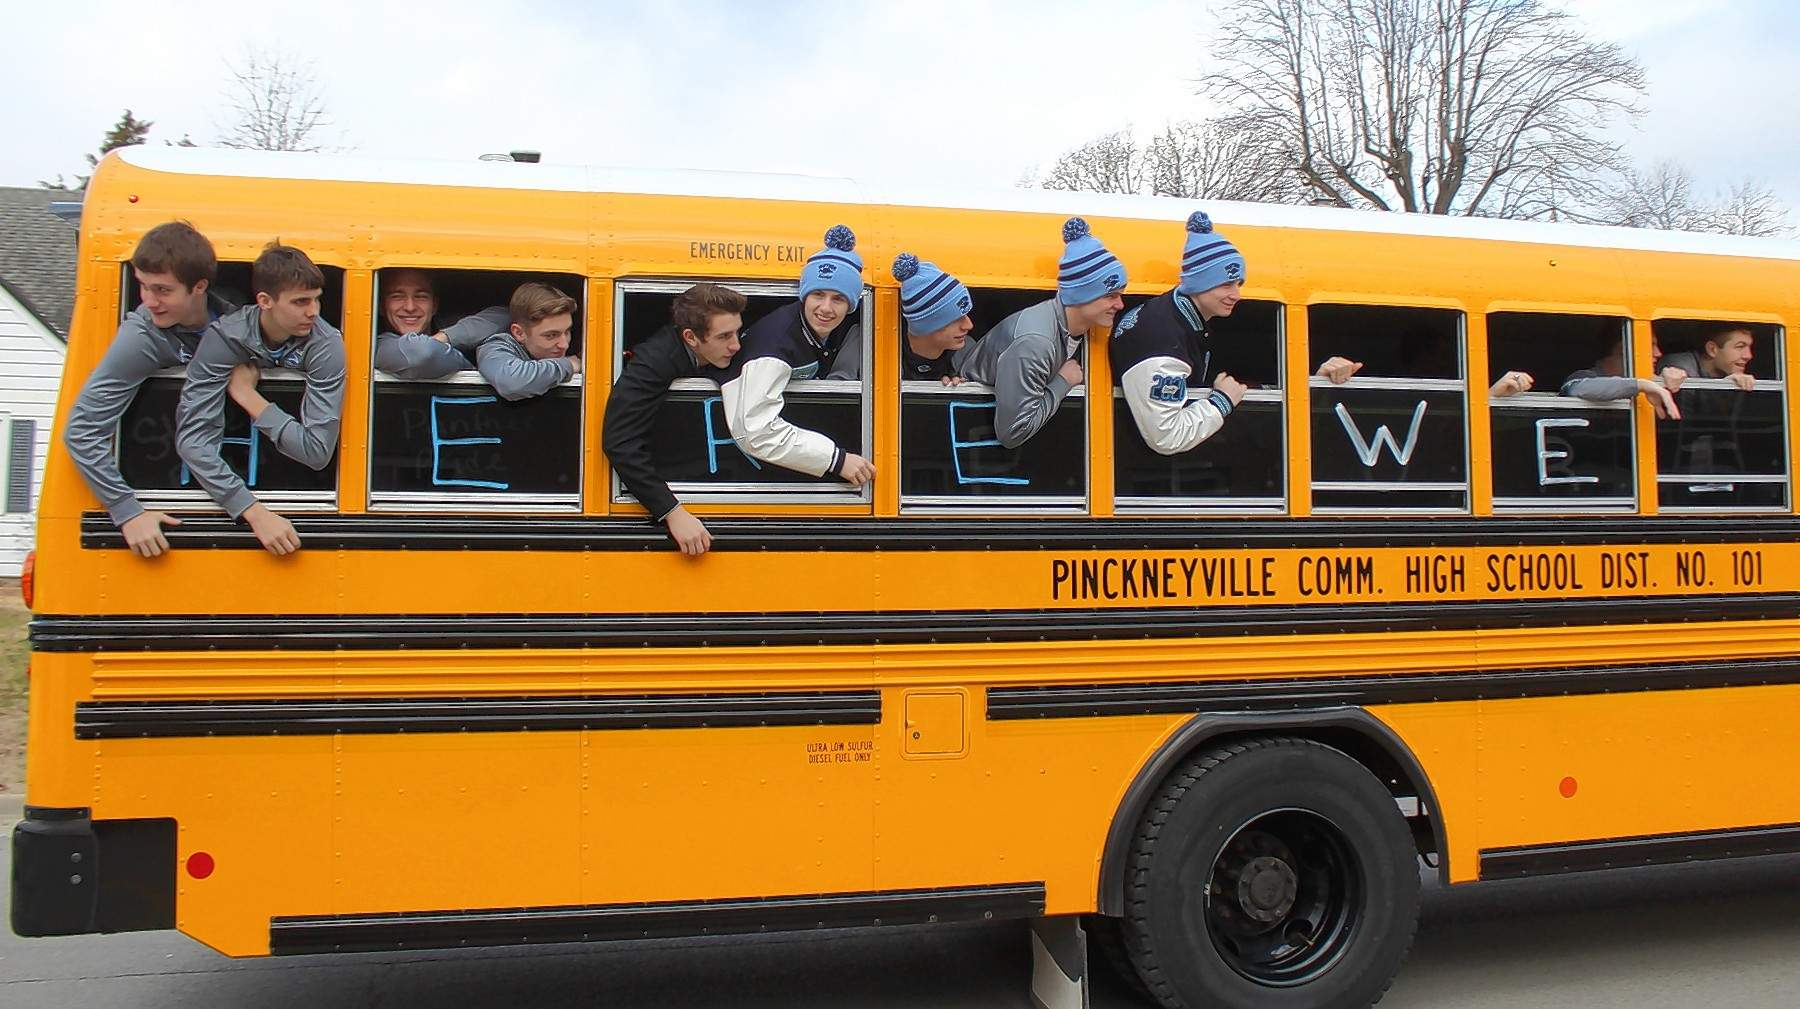 The Panthers lean out the windows as students and staff cheer.